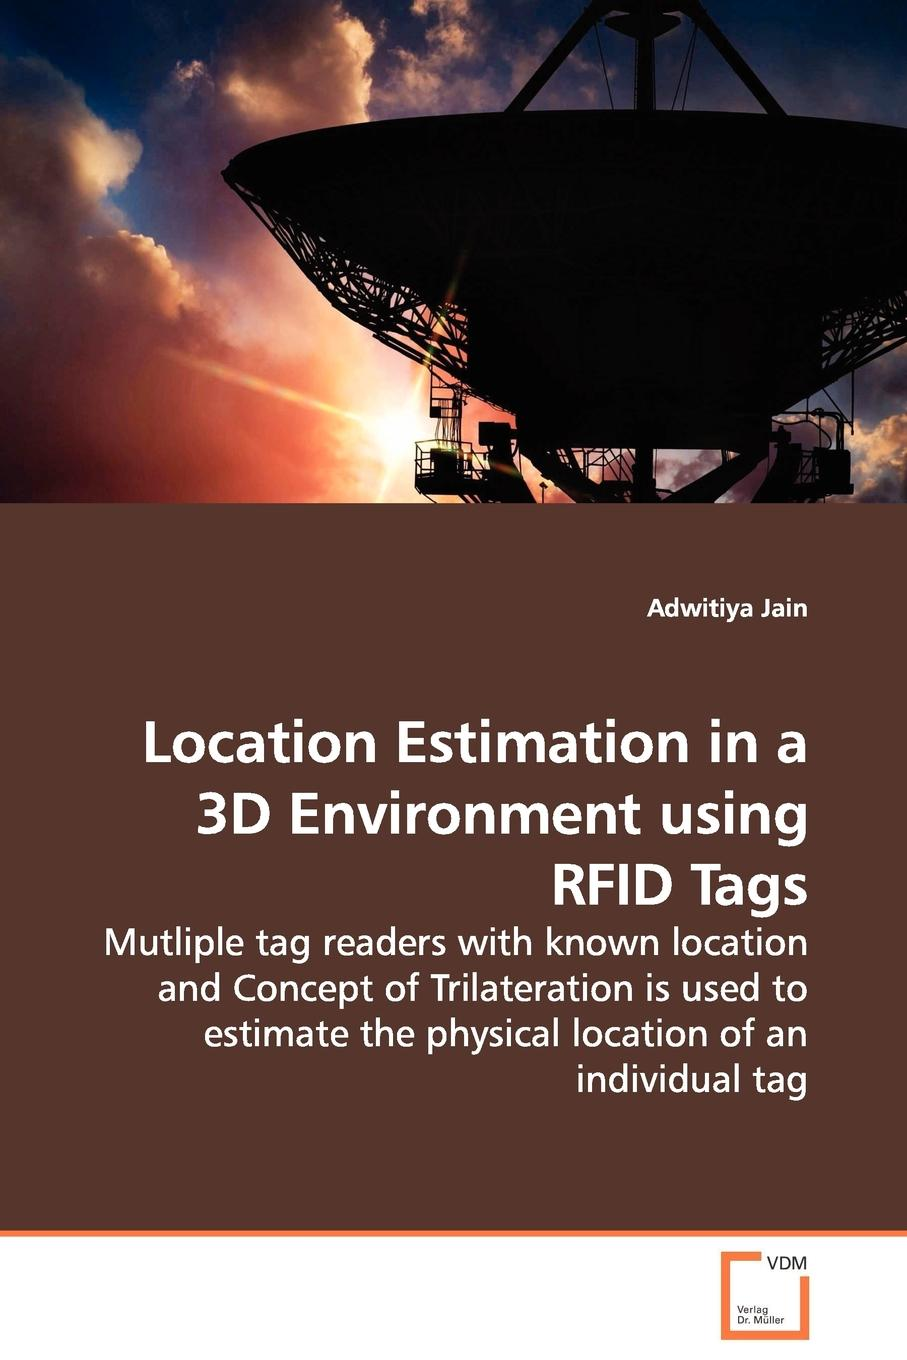 Adwitiya Jain Location Estimation in a 3D Environment using RFID Tags - Mutliple tag readers with known location and Concept of Trilateration is used to estimate the physical location of an individual tag игрушка мягкая nattou зеркало mirror for car alex